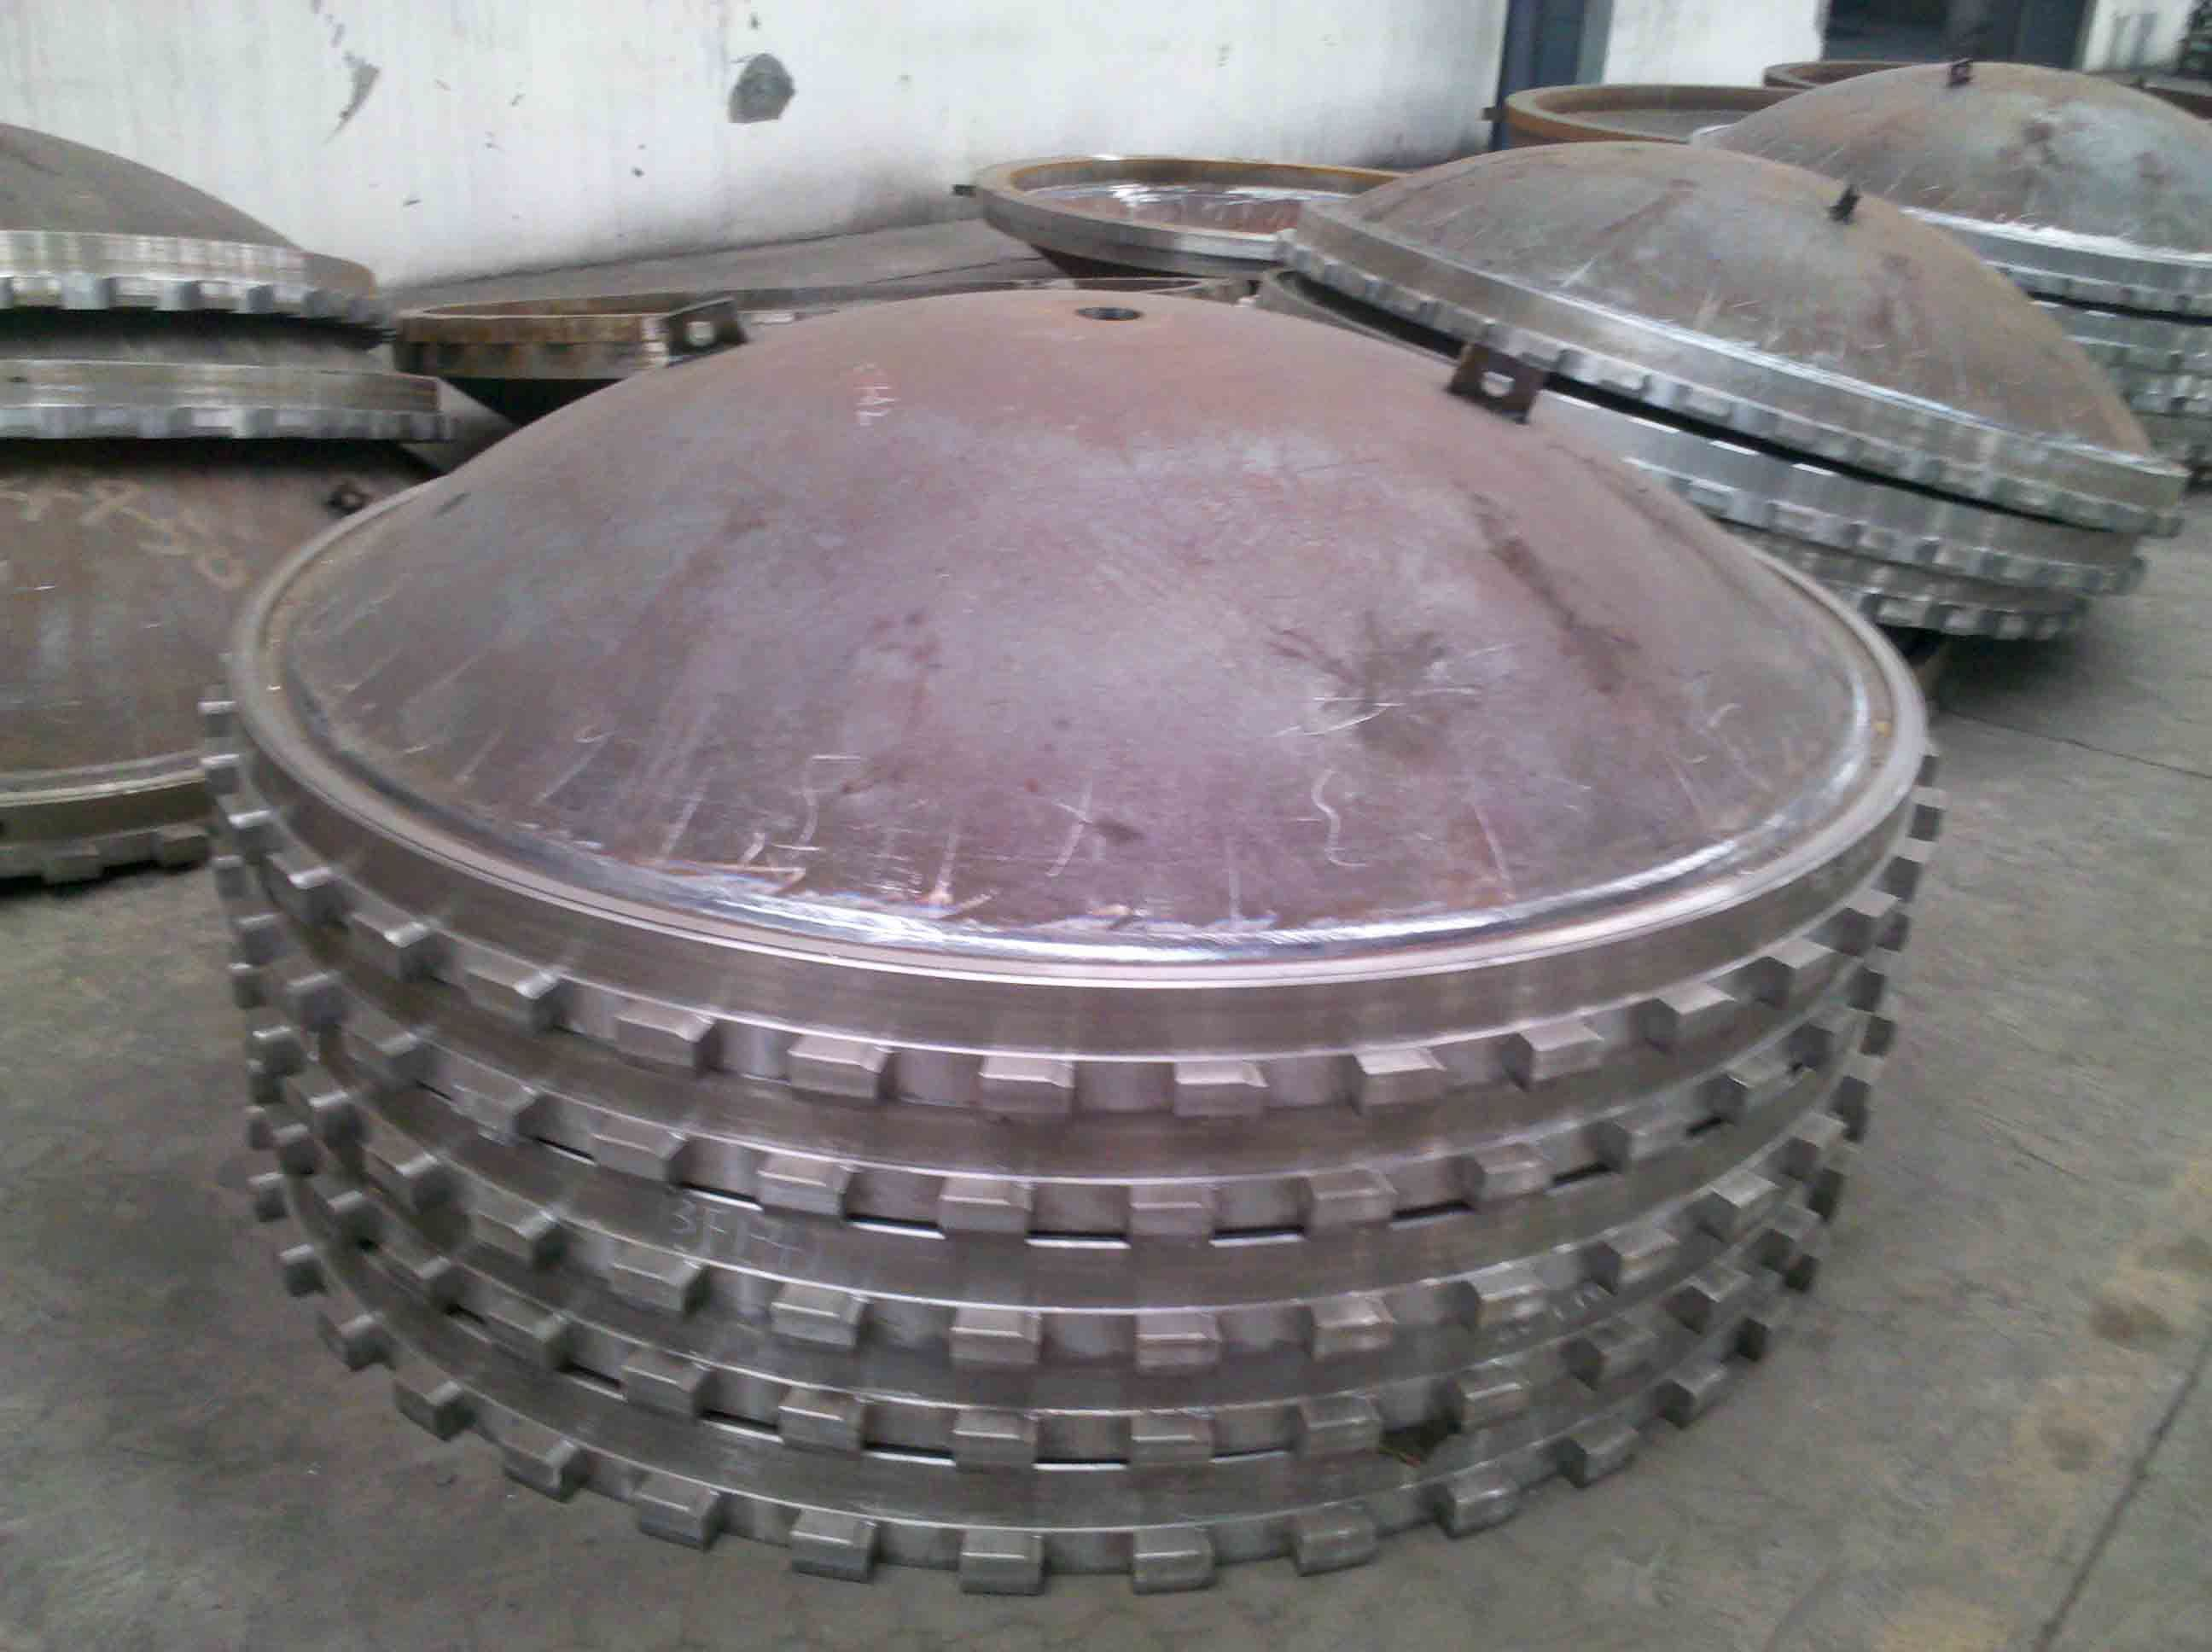 China Door for AAC Block Brick Autoclave - China Aac Autoclave Autoclave & China Door for AAC Block Brick Autoclave - China Aac Autoclave ...